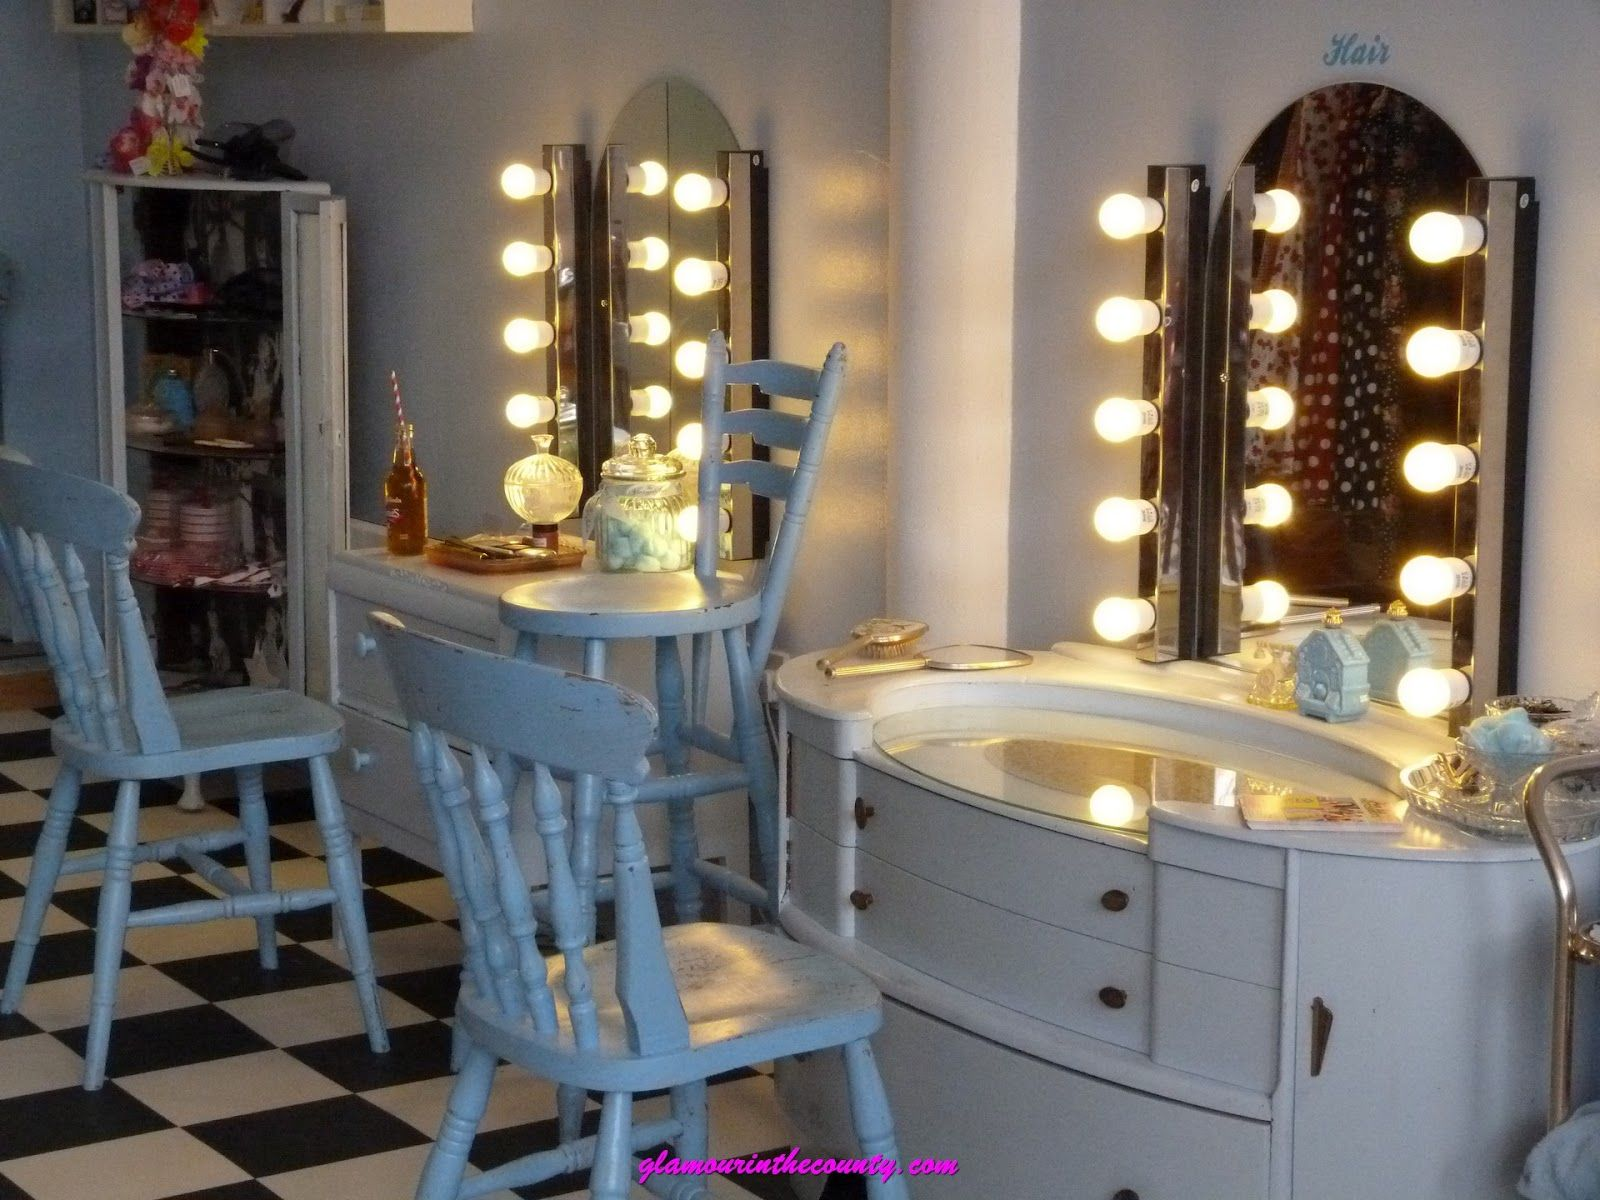 dressing table at le keux salon paris peluqueria vintage salon salons y vintage salon decor. Black Bedroom Furniture Sets. Home Design Ideas